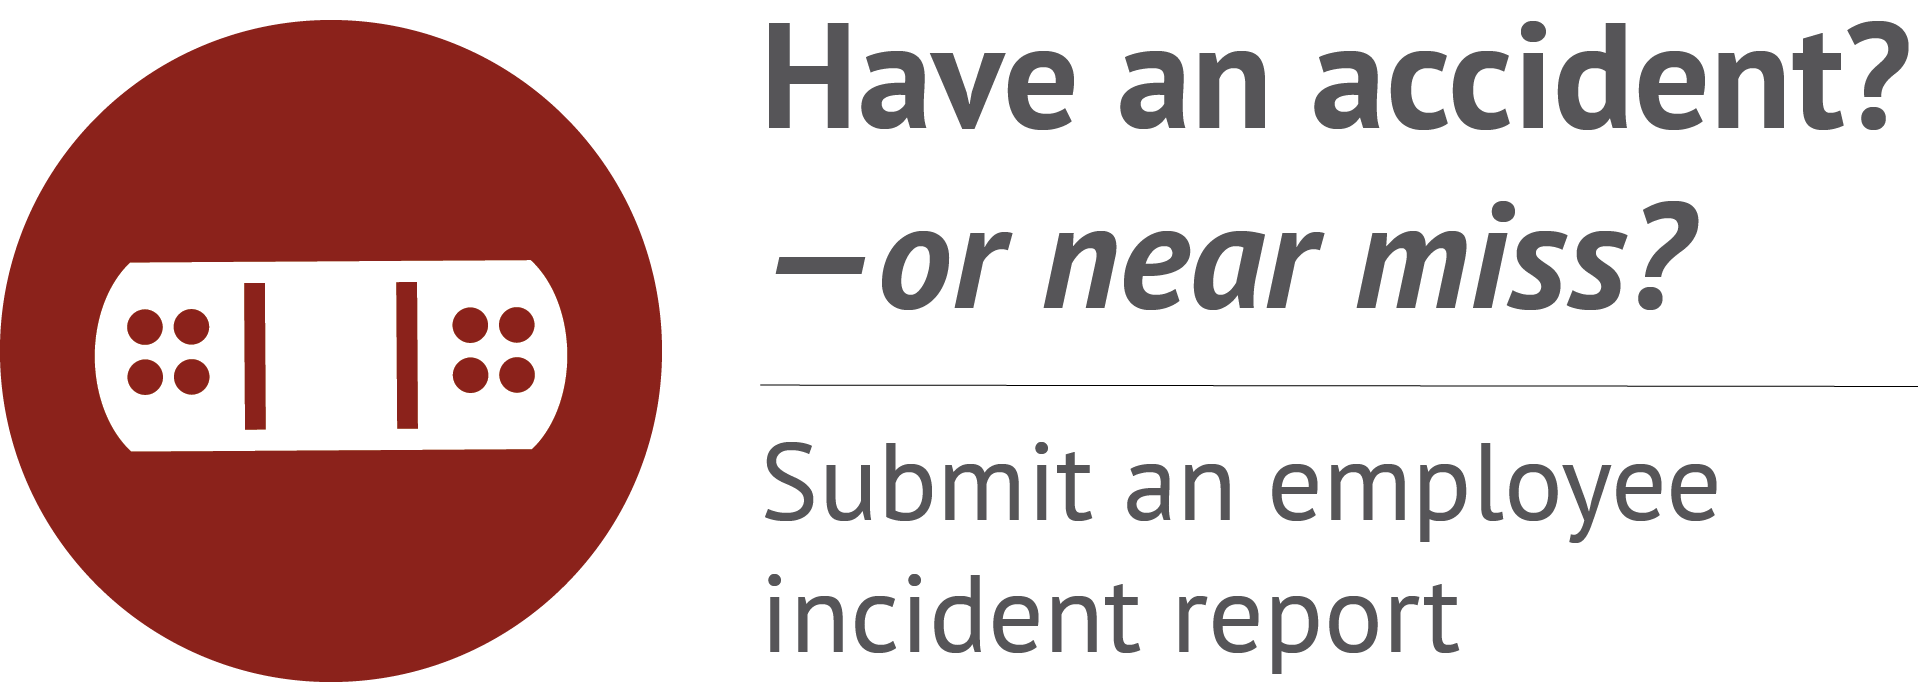 Have an accident? —or near miss? Submit an employee incident report